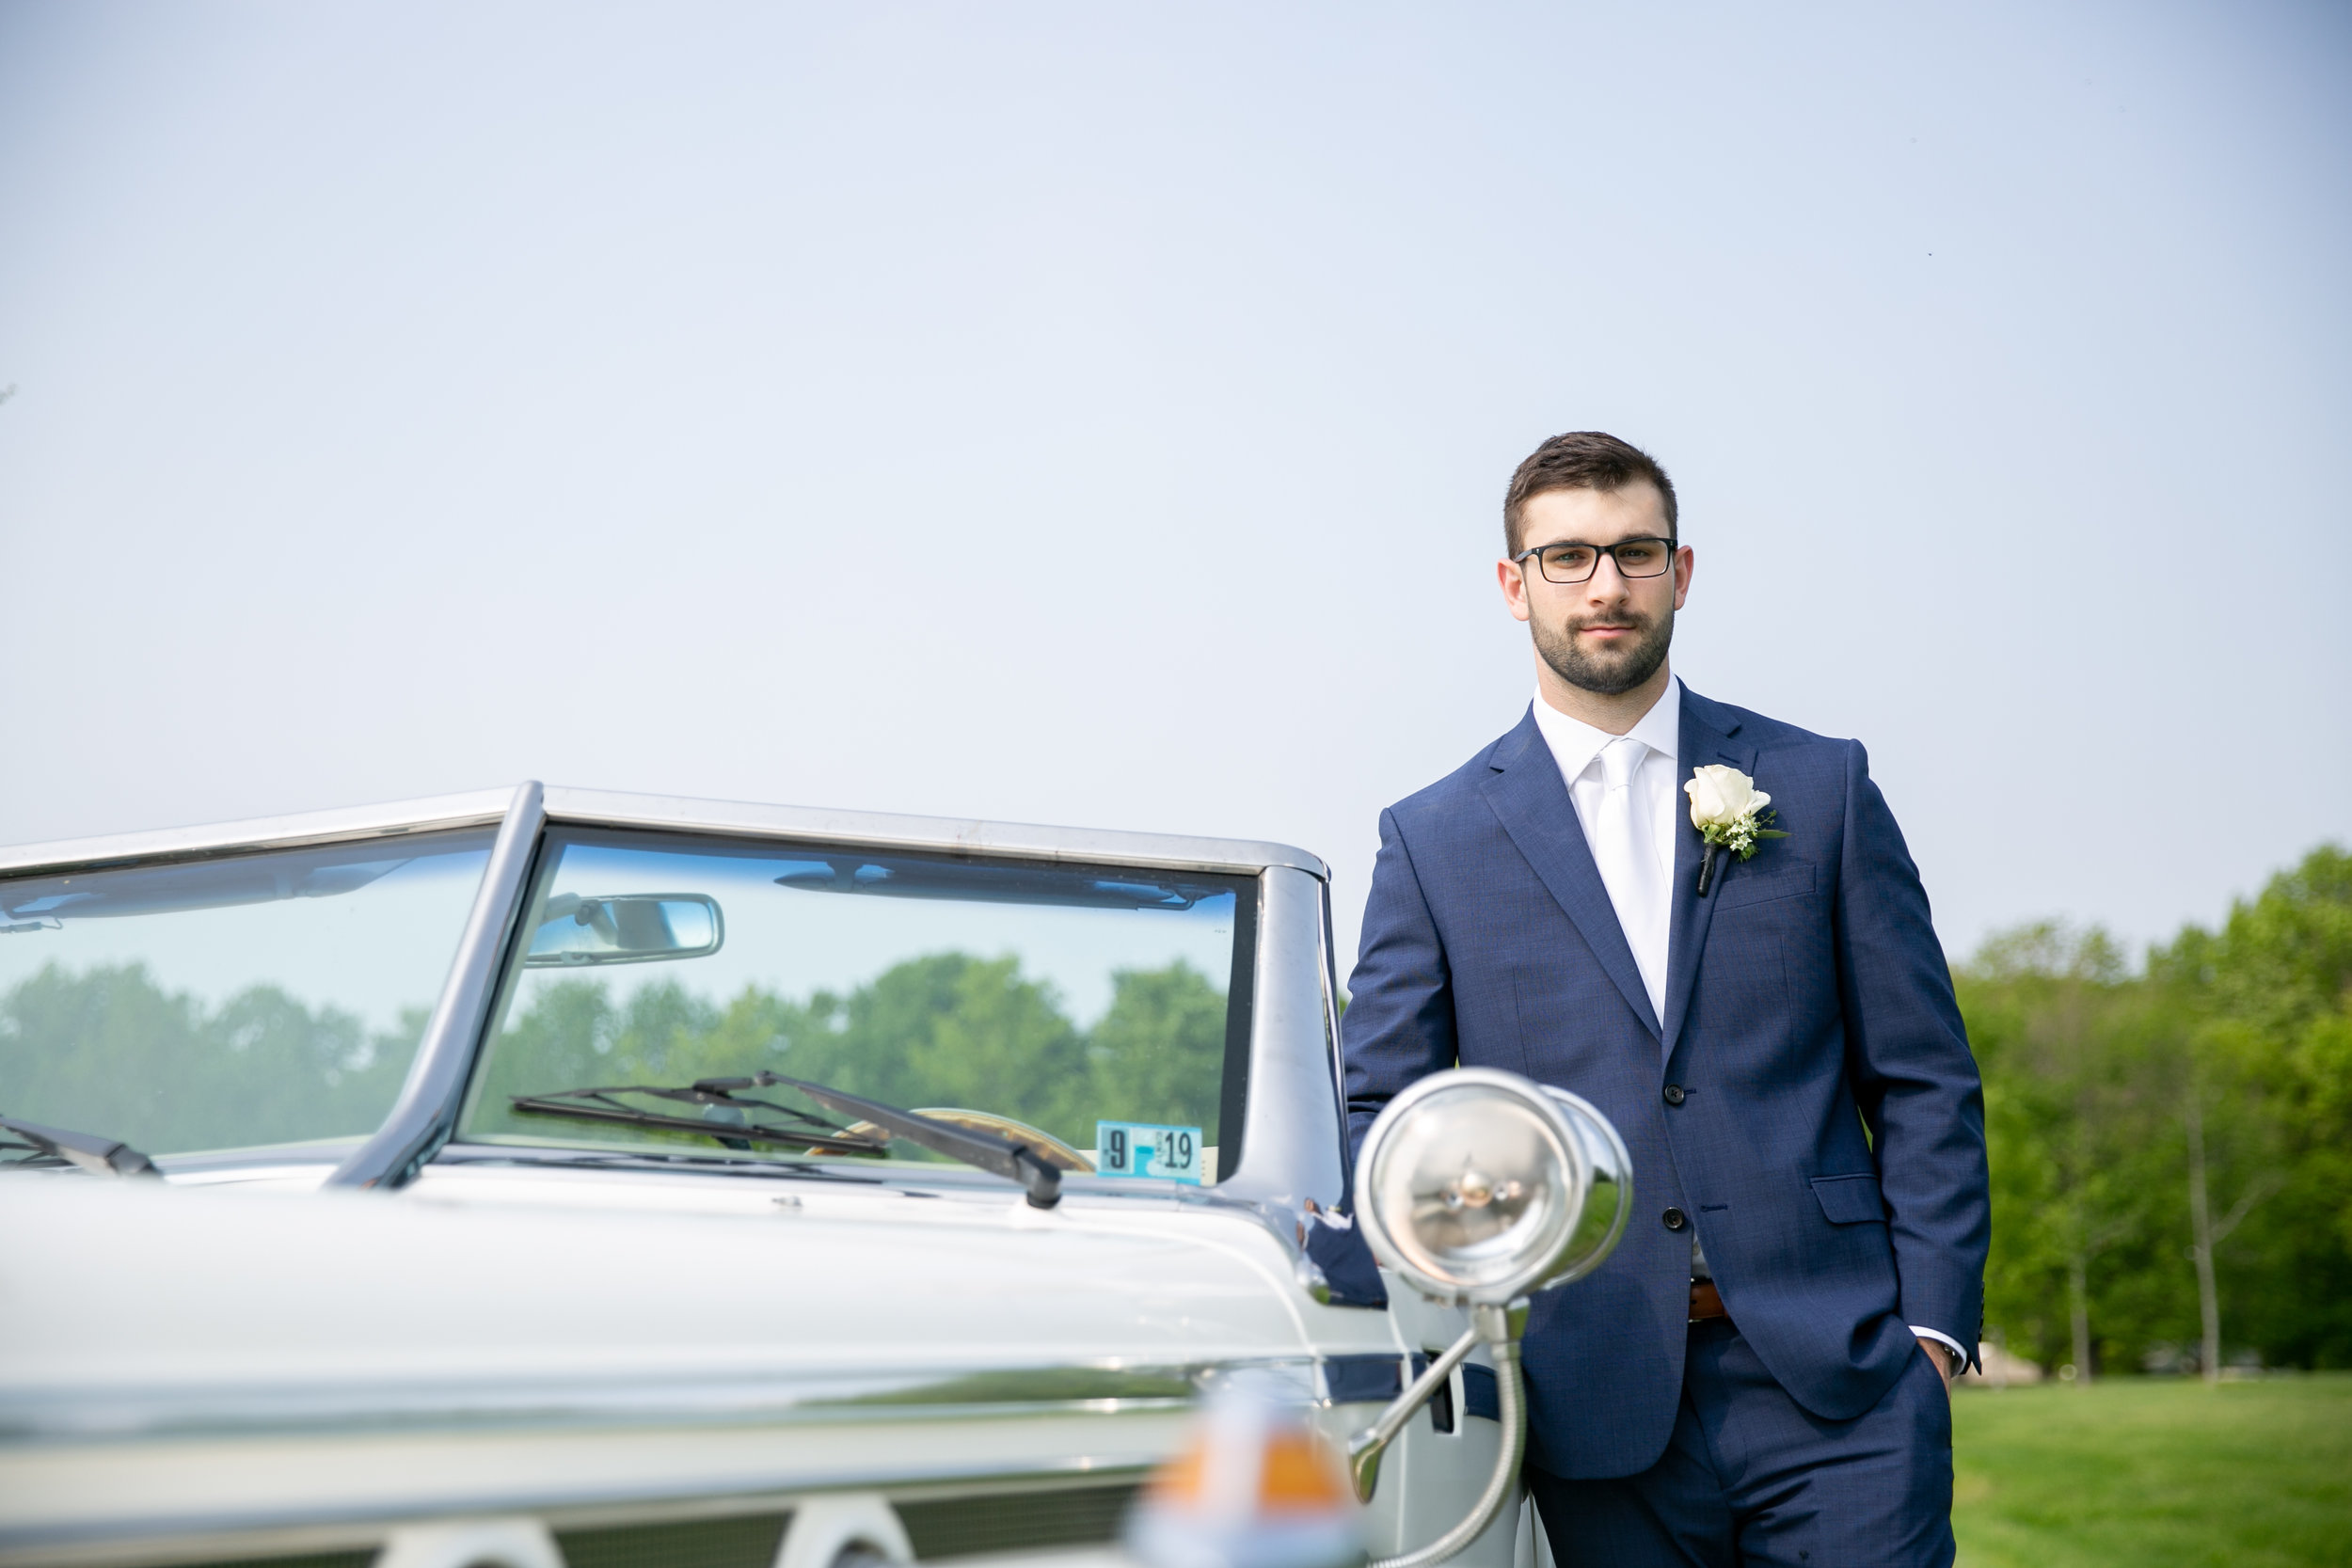 montdale-country-club-wedding-by-leahdanielsphotography48.jpg